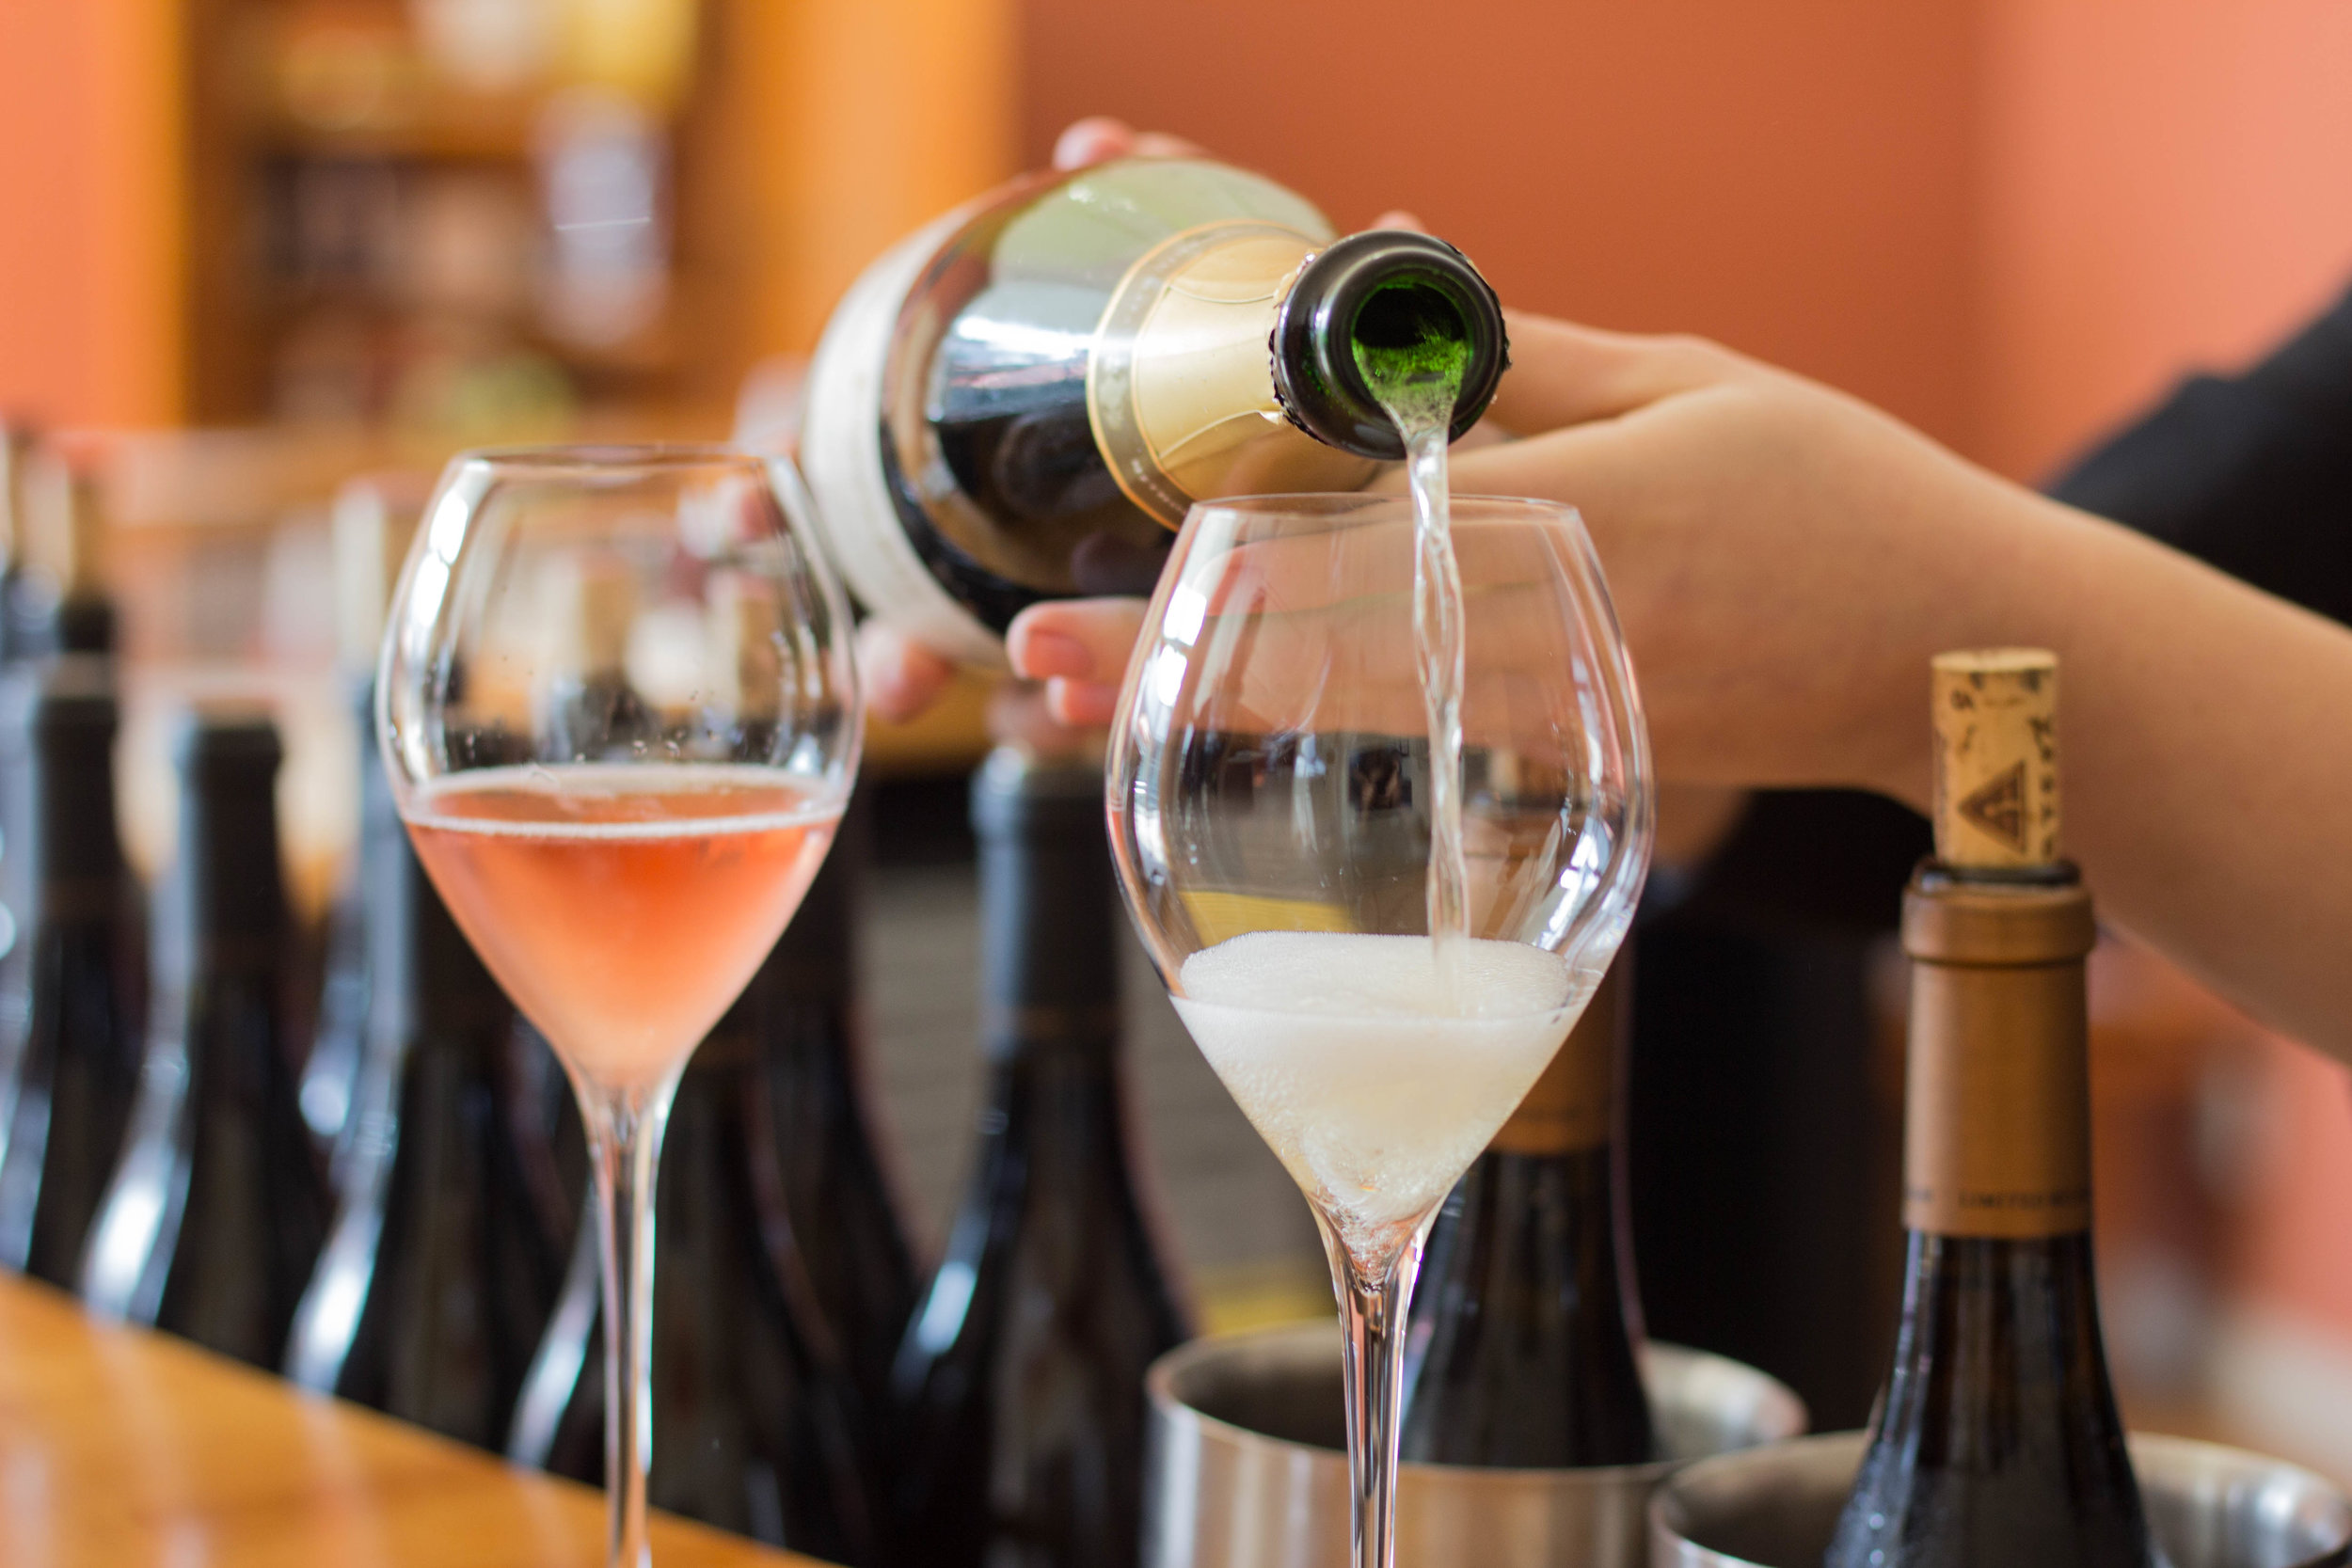 artesa, tips for wine  tasting in napa valley, sonoma, napa, visit california, wine tasting tips, san francisco, oakland,